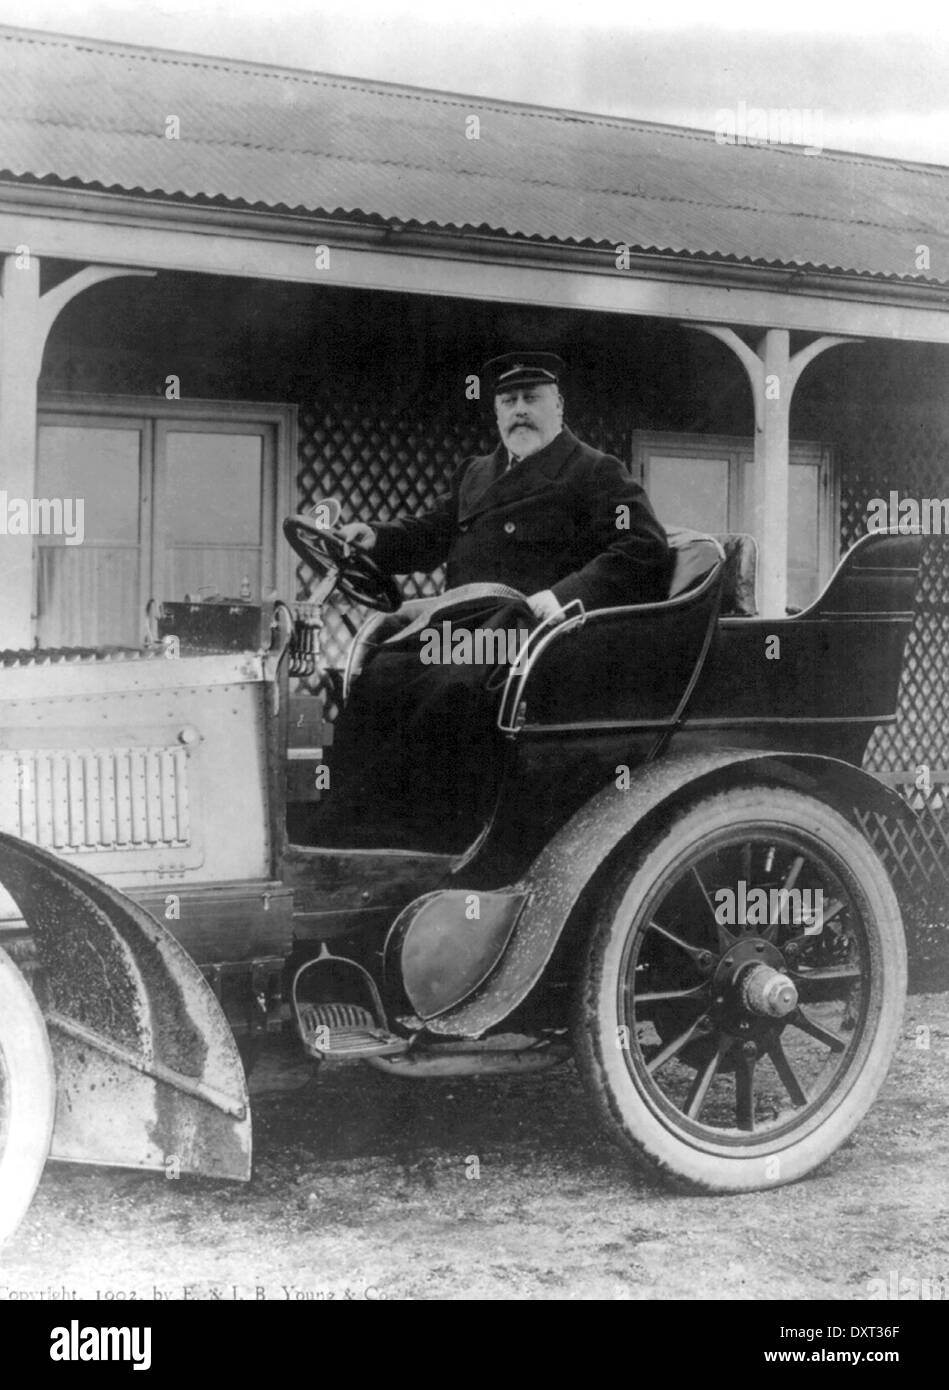 King Edward VII of England in a car - Stock Image